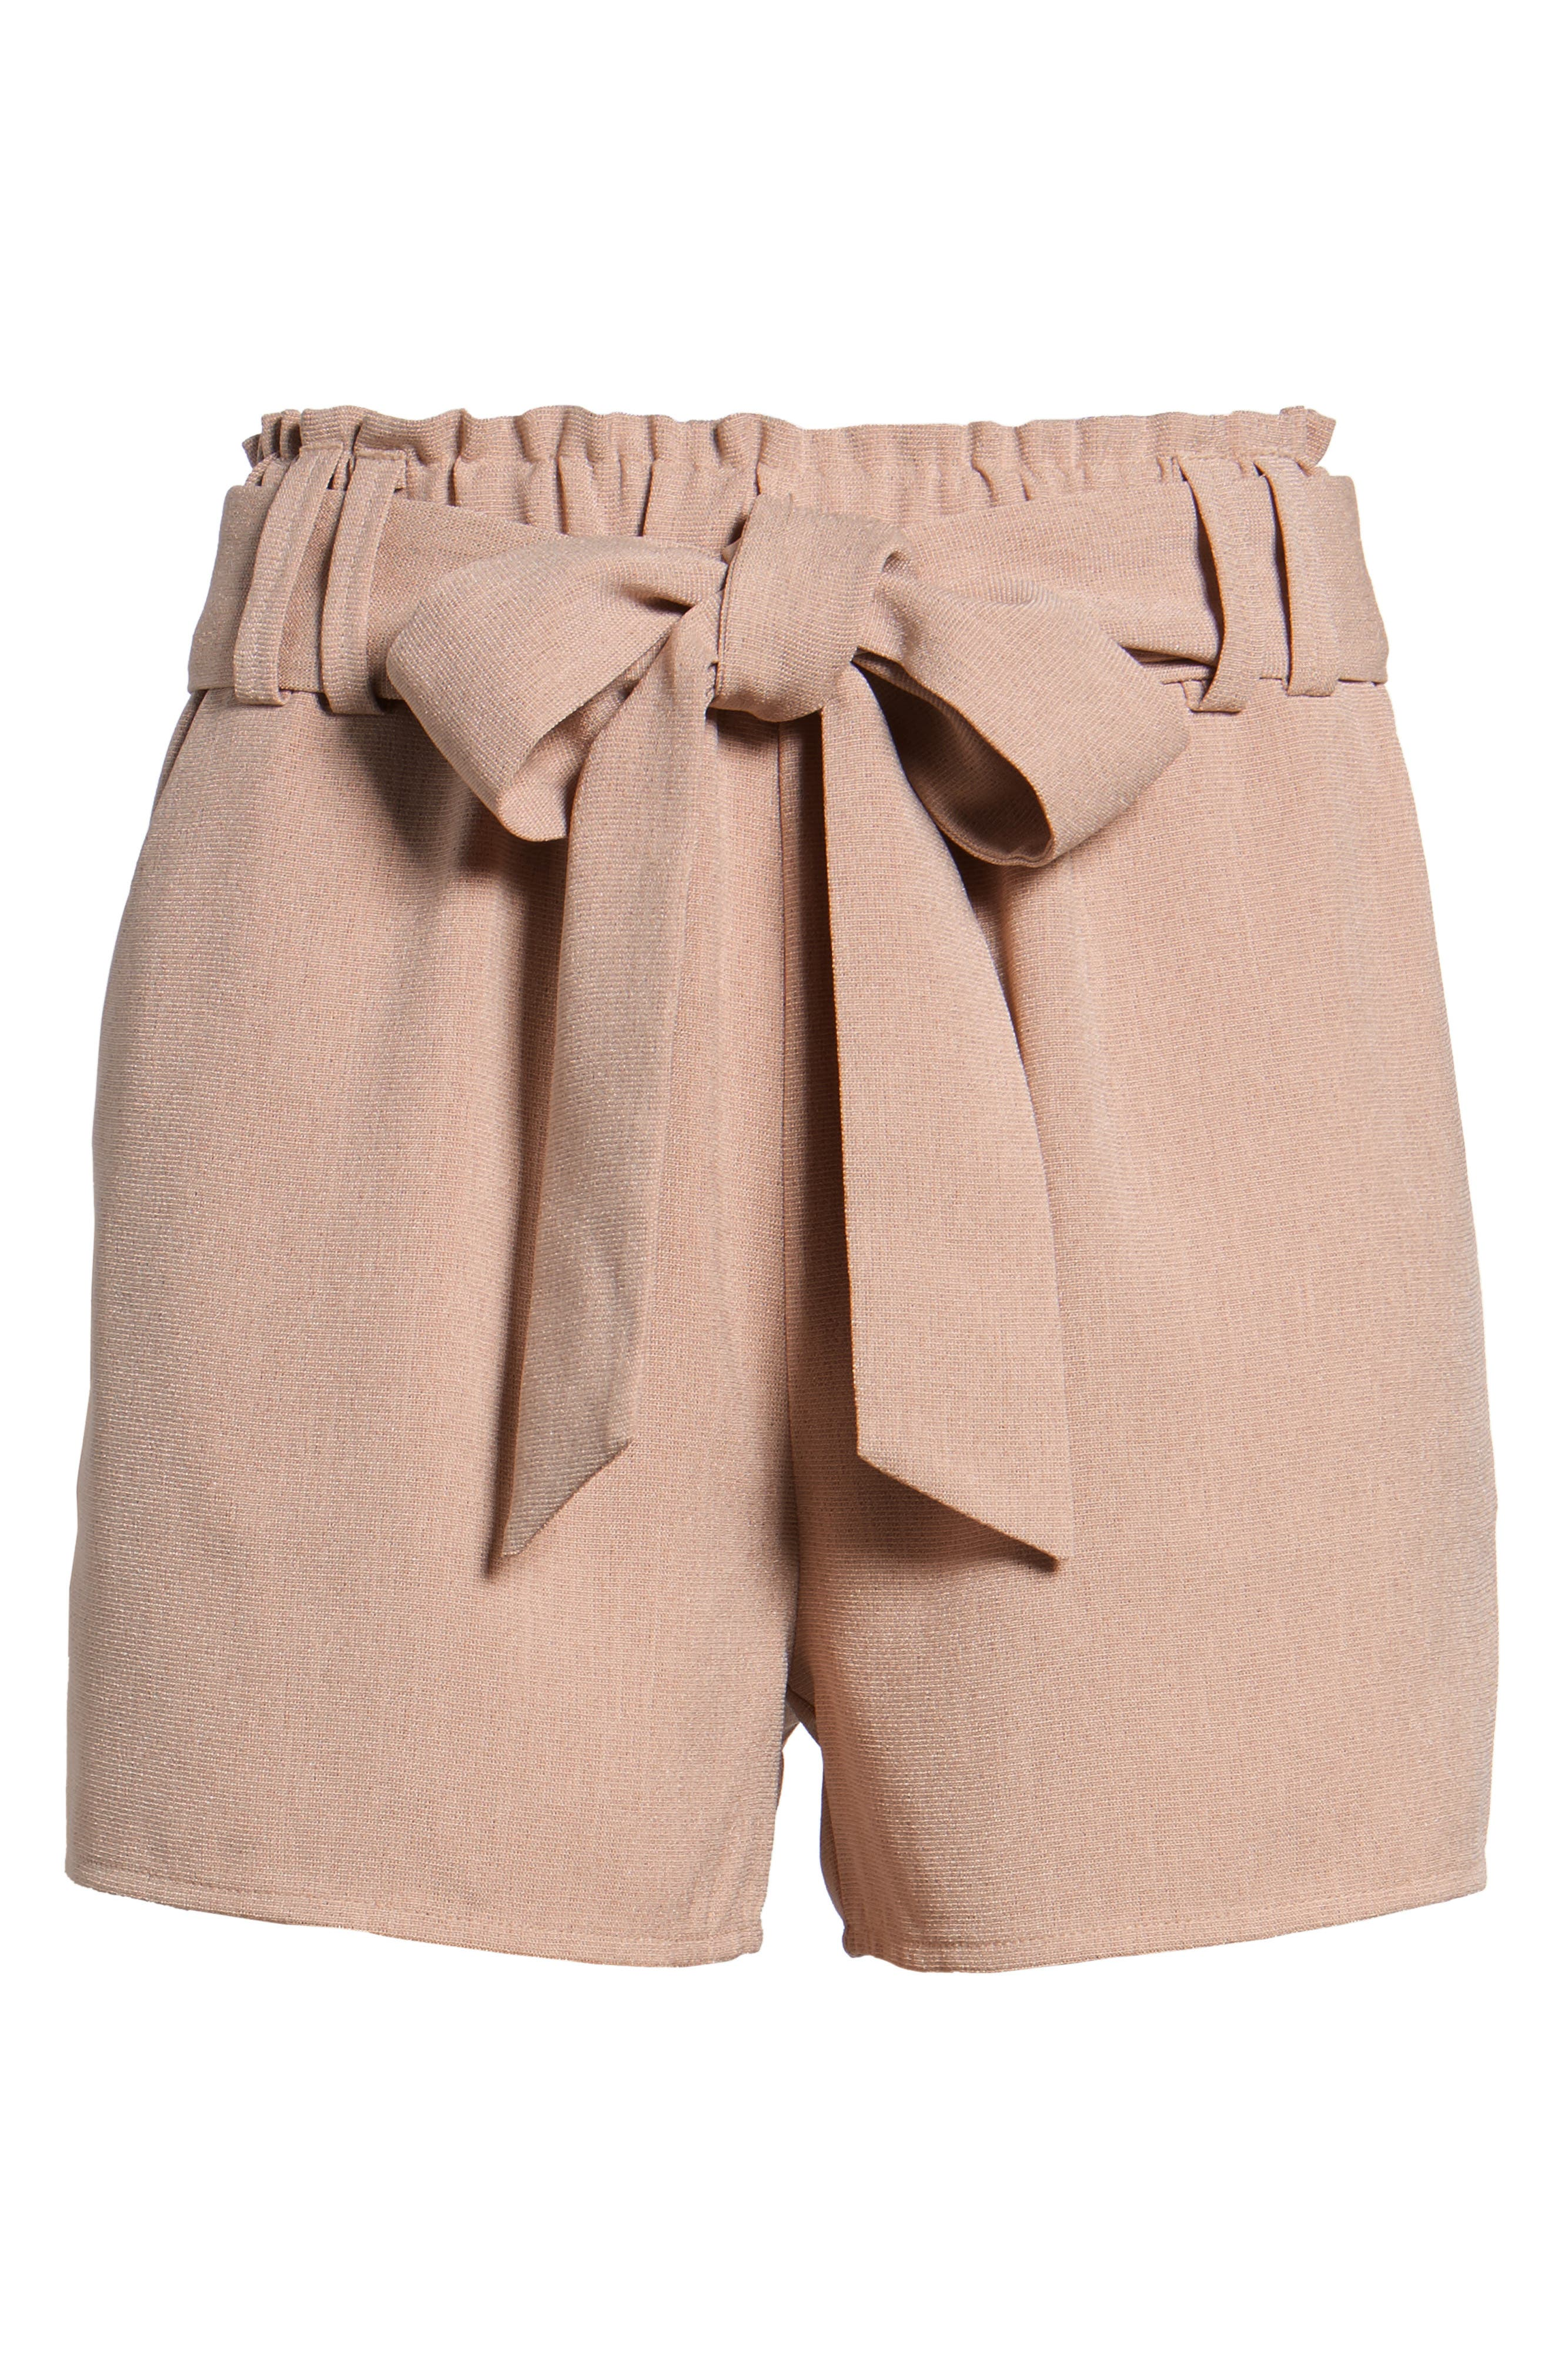 Tie Waist Shorts,                             Alternate thumbnail 7, color,                             Dusty Pink